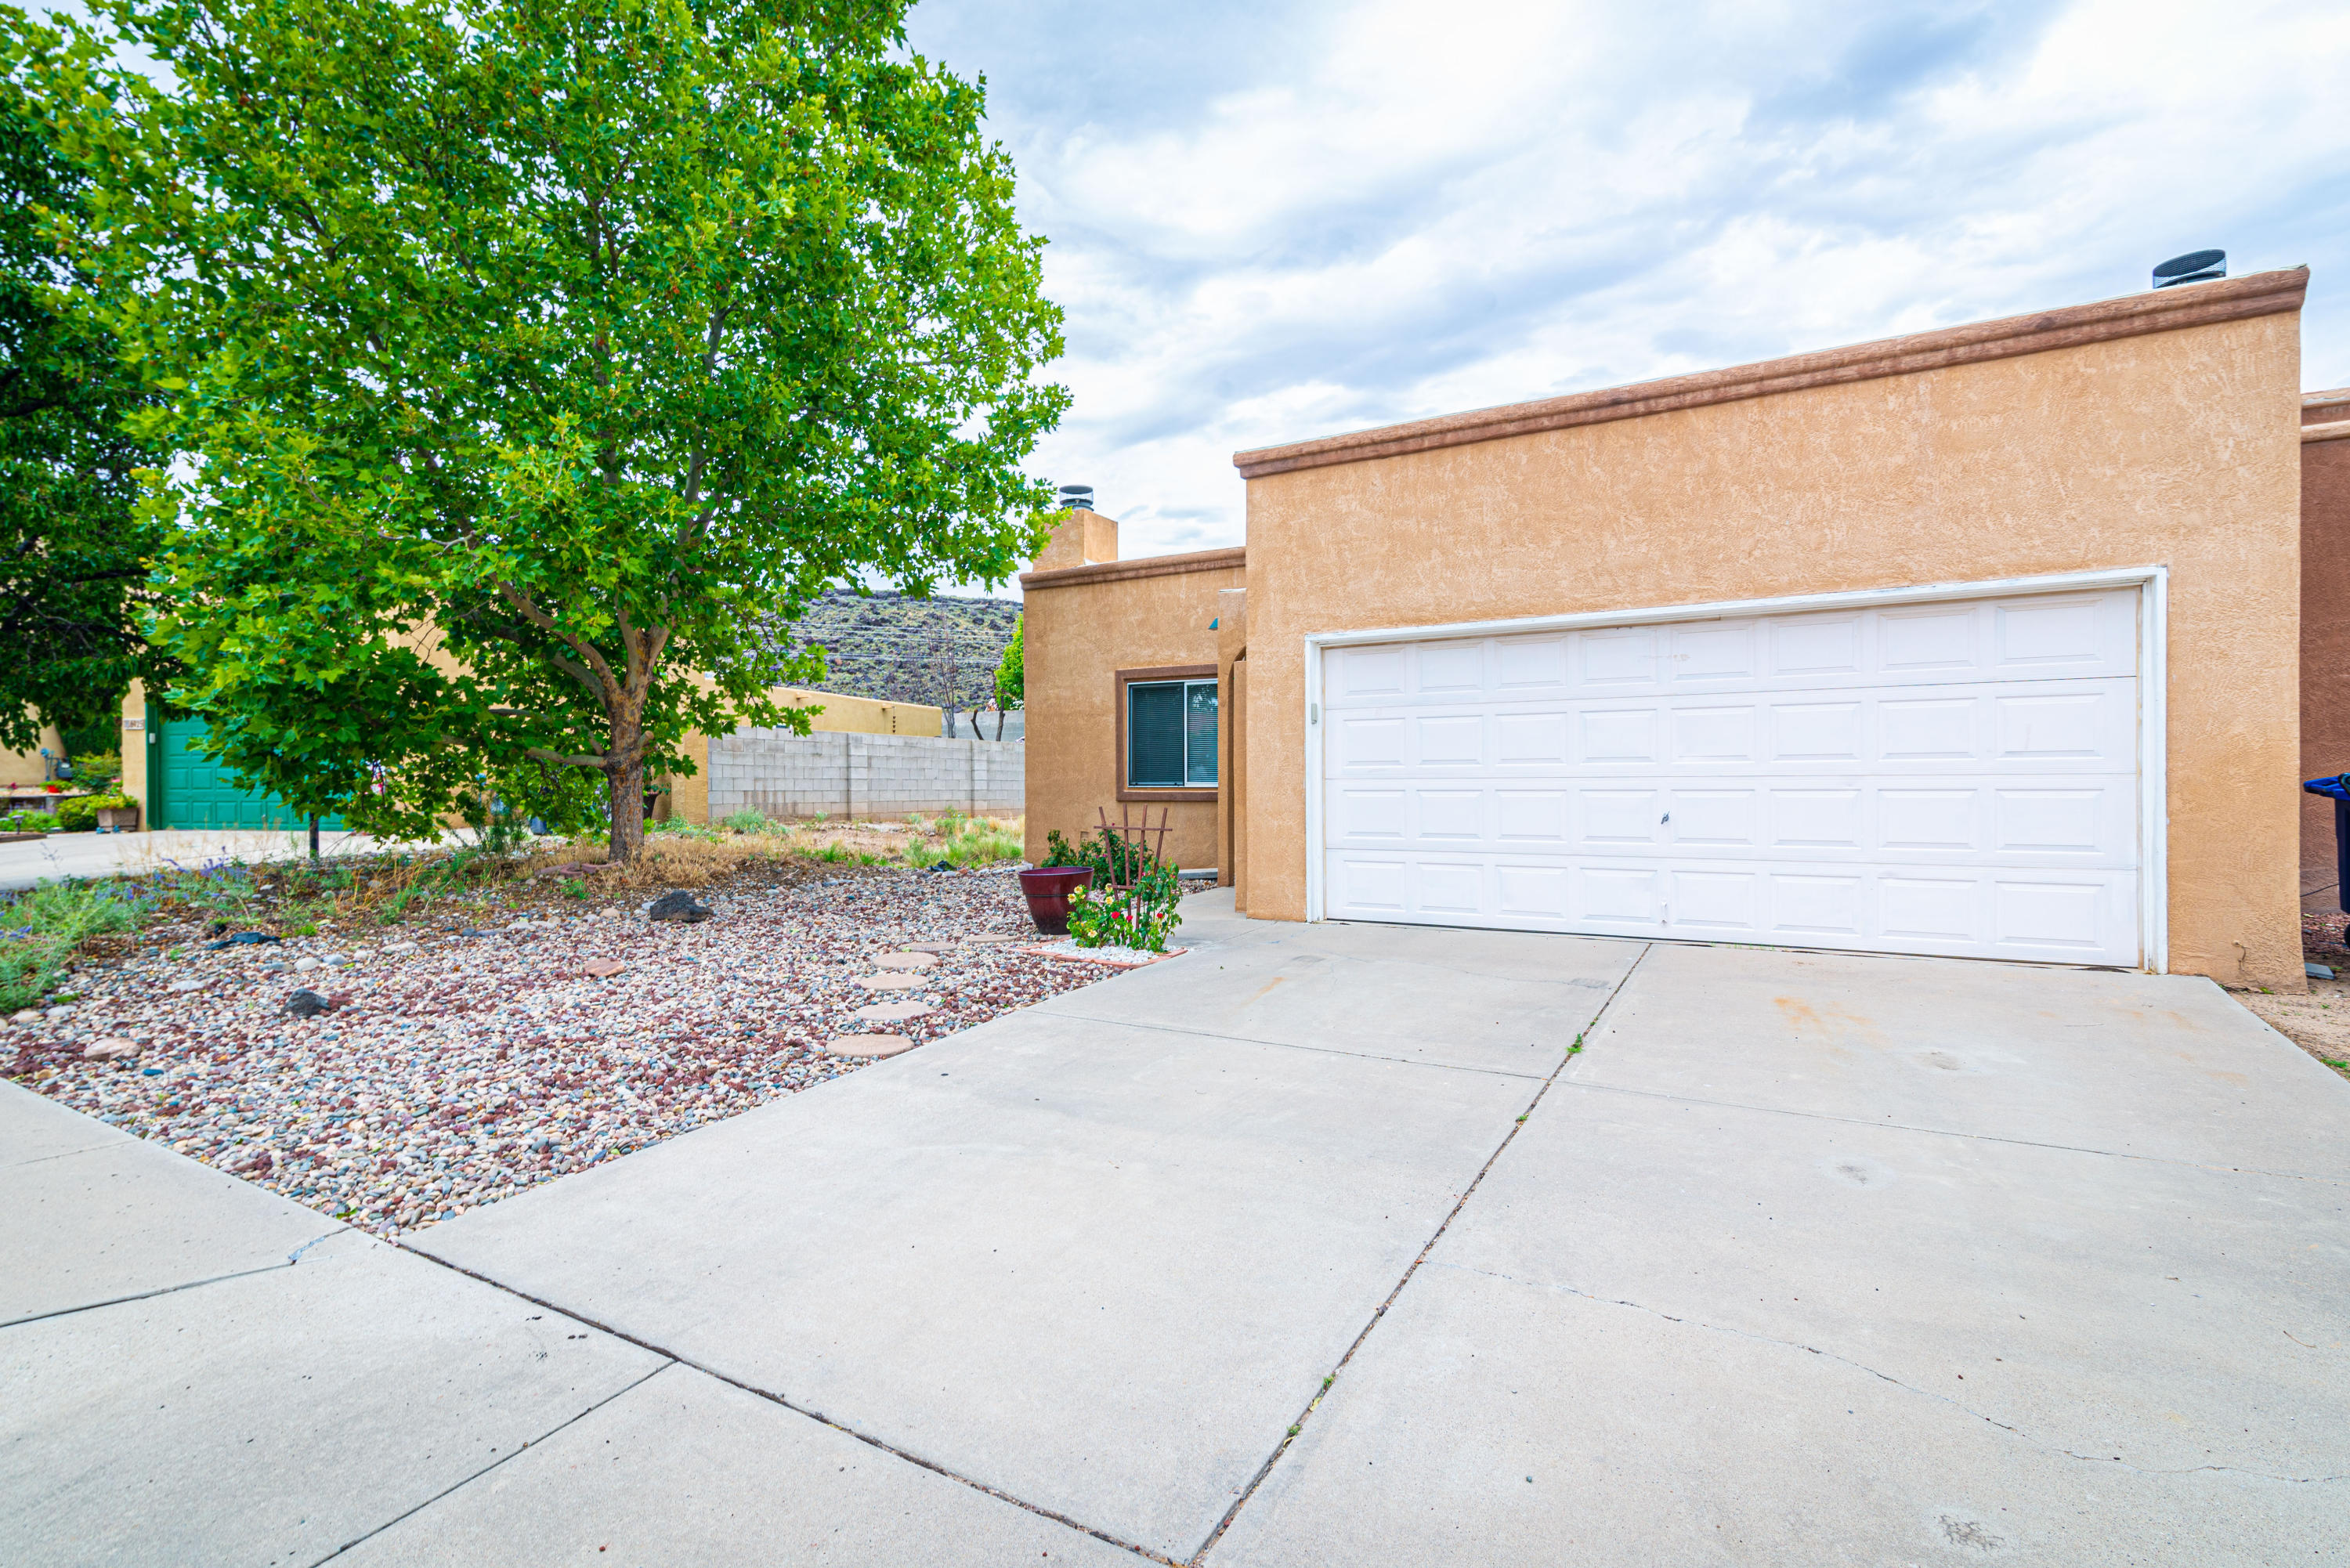 This nicely updated townhome has a warm feeling throughout! Total kitchen re-do in 2011 opens to greatroom and has lovely cabinetry and ample spaces; Spacious greatroom is bright and airy, has a raised ceiling, decorator ledges and a cozy FP; Pretty engineered wood flooring everywhere. New HVAC unit in May, 2020, TPO roof in 2015, new doors, fresh paint. Walk to neighborhood park. Shows Great!